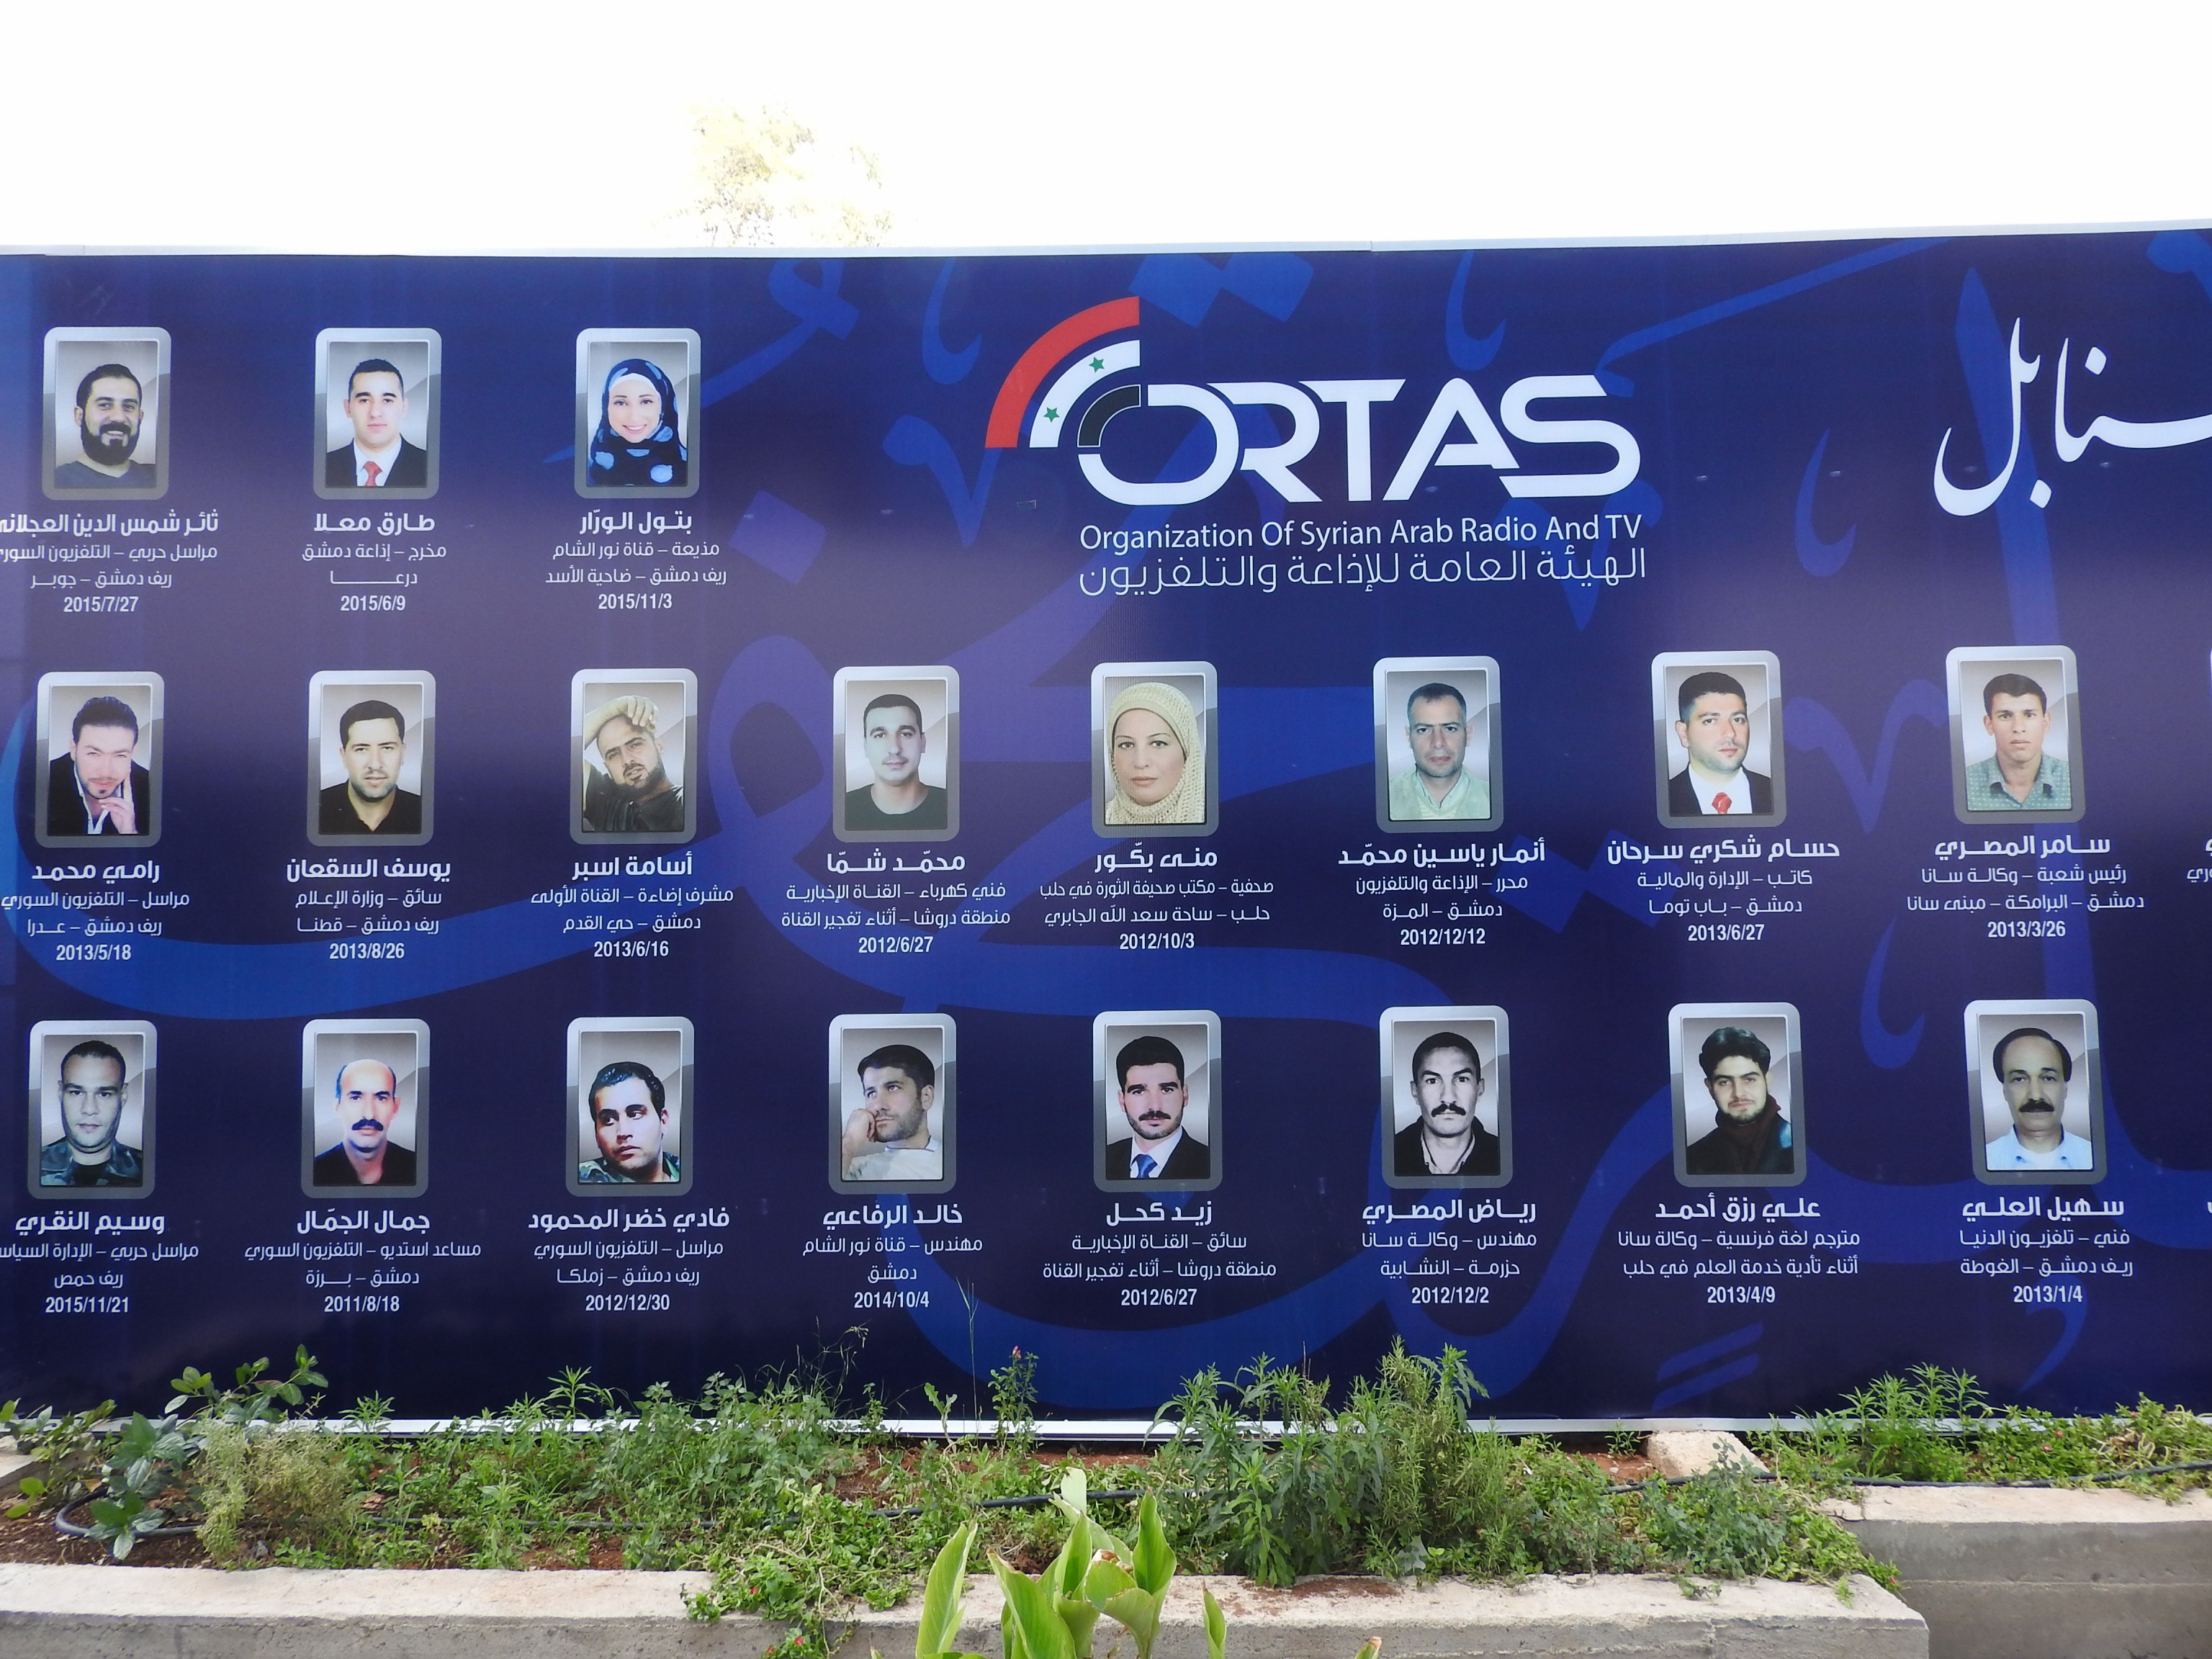 "Statistics from the Syrian Ministry of Information (November 2015) cite as many as 50 ""members of Syrian mass media establishments"" killed while at work or reporting. Thaer Al-Ajlani, top left, was killed on July 27, 2015 when hit with shrapnel from a mortar fired by Jebhat al-Nusra, then occupying much of Jobar. Other martyred journalists have been killed by terrorists' sniper attacks, point-blank assassinations, shellings and gunfire while reporting. Corporate media and international associations to protect journalists have largely ignored the deaths of Syrian journalists killed by western-backed terrorist factions."